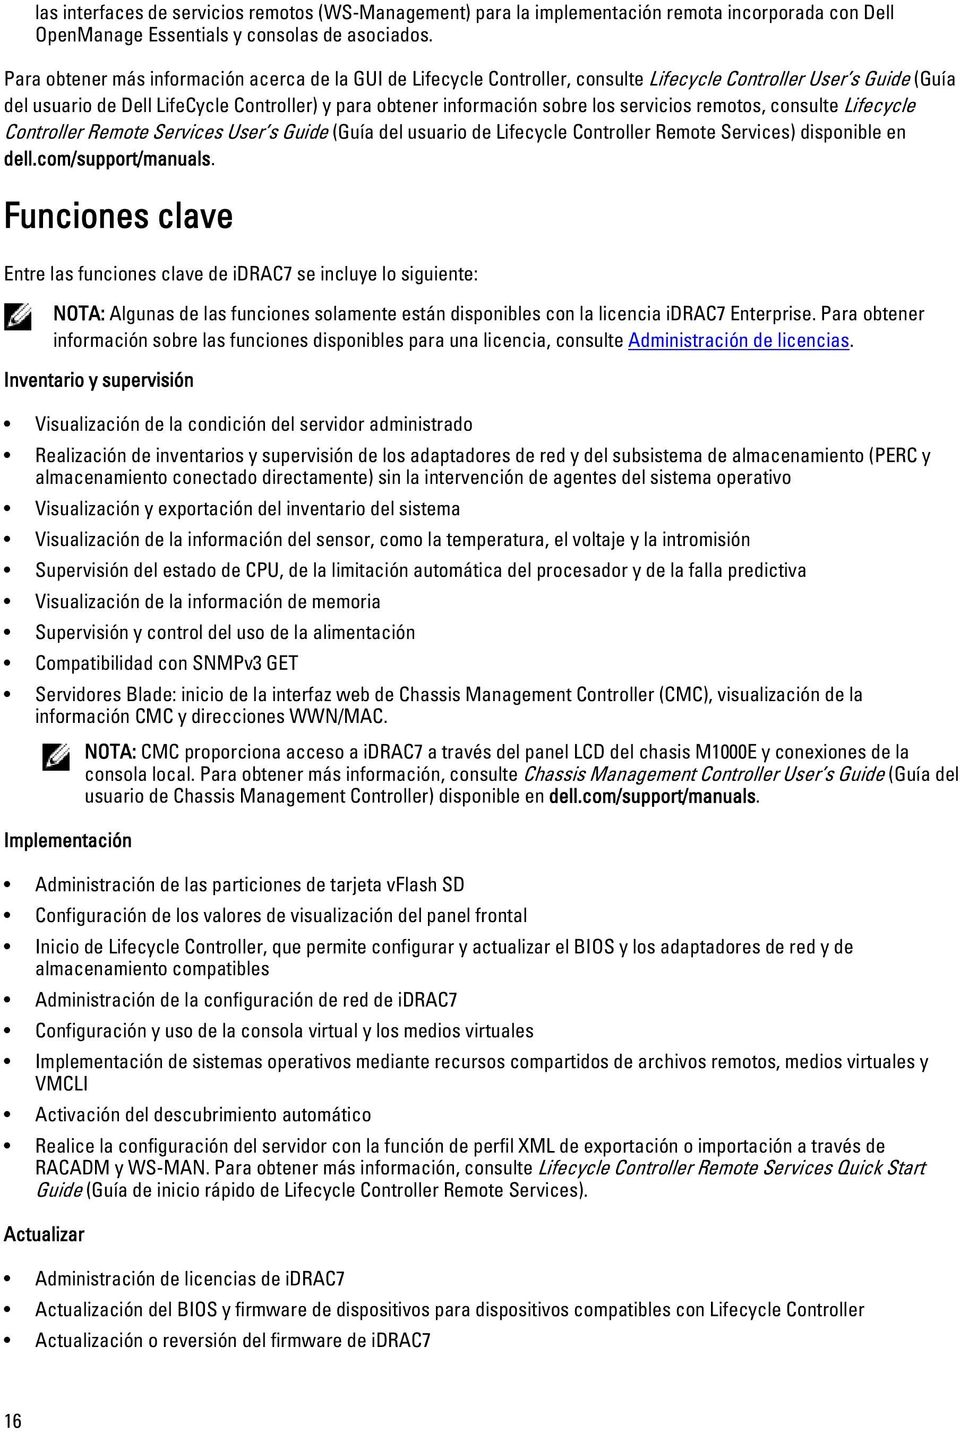 servicios remotos, consulte Lifecycle Controller Remote Services User s Guide (Guía del usuario de Lifecycle Controller Remote Services) disponible en dell.com/support/manuals.